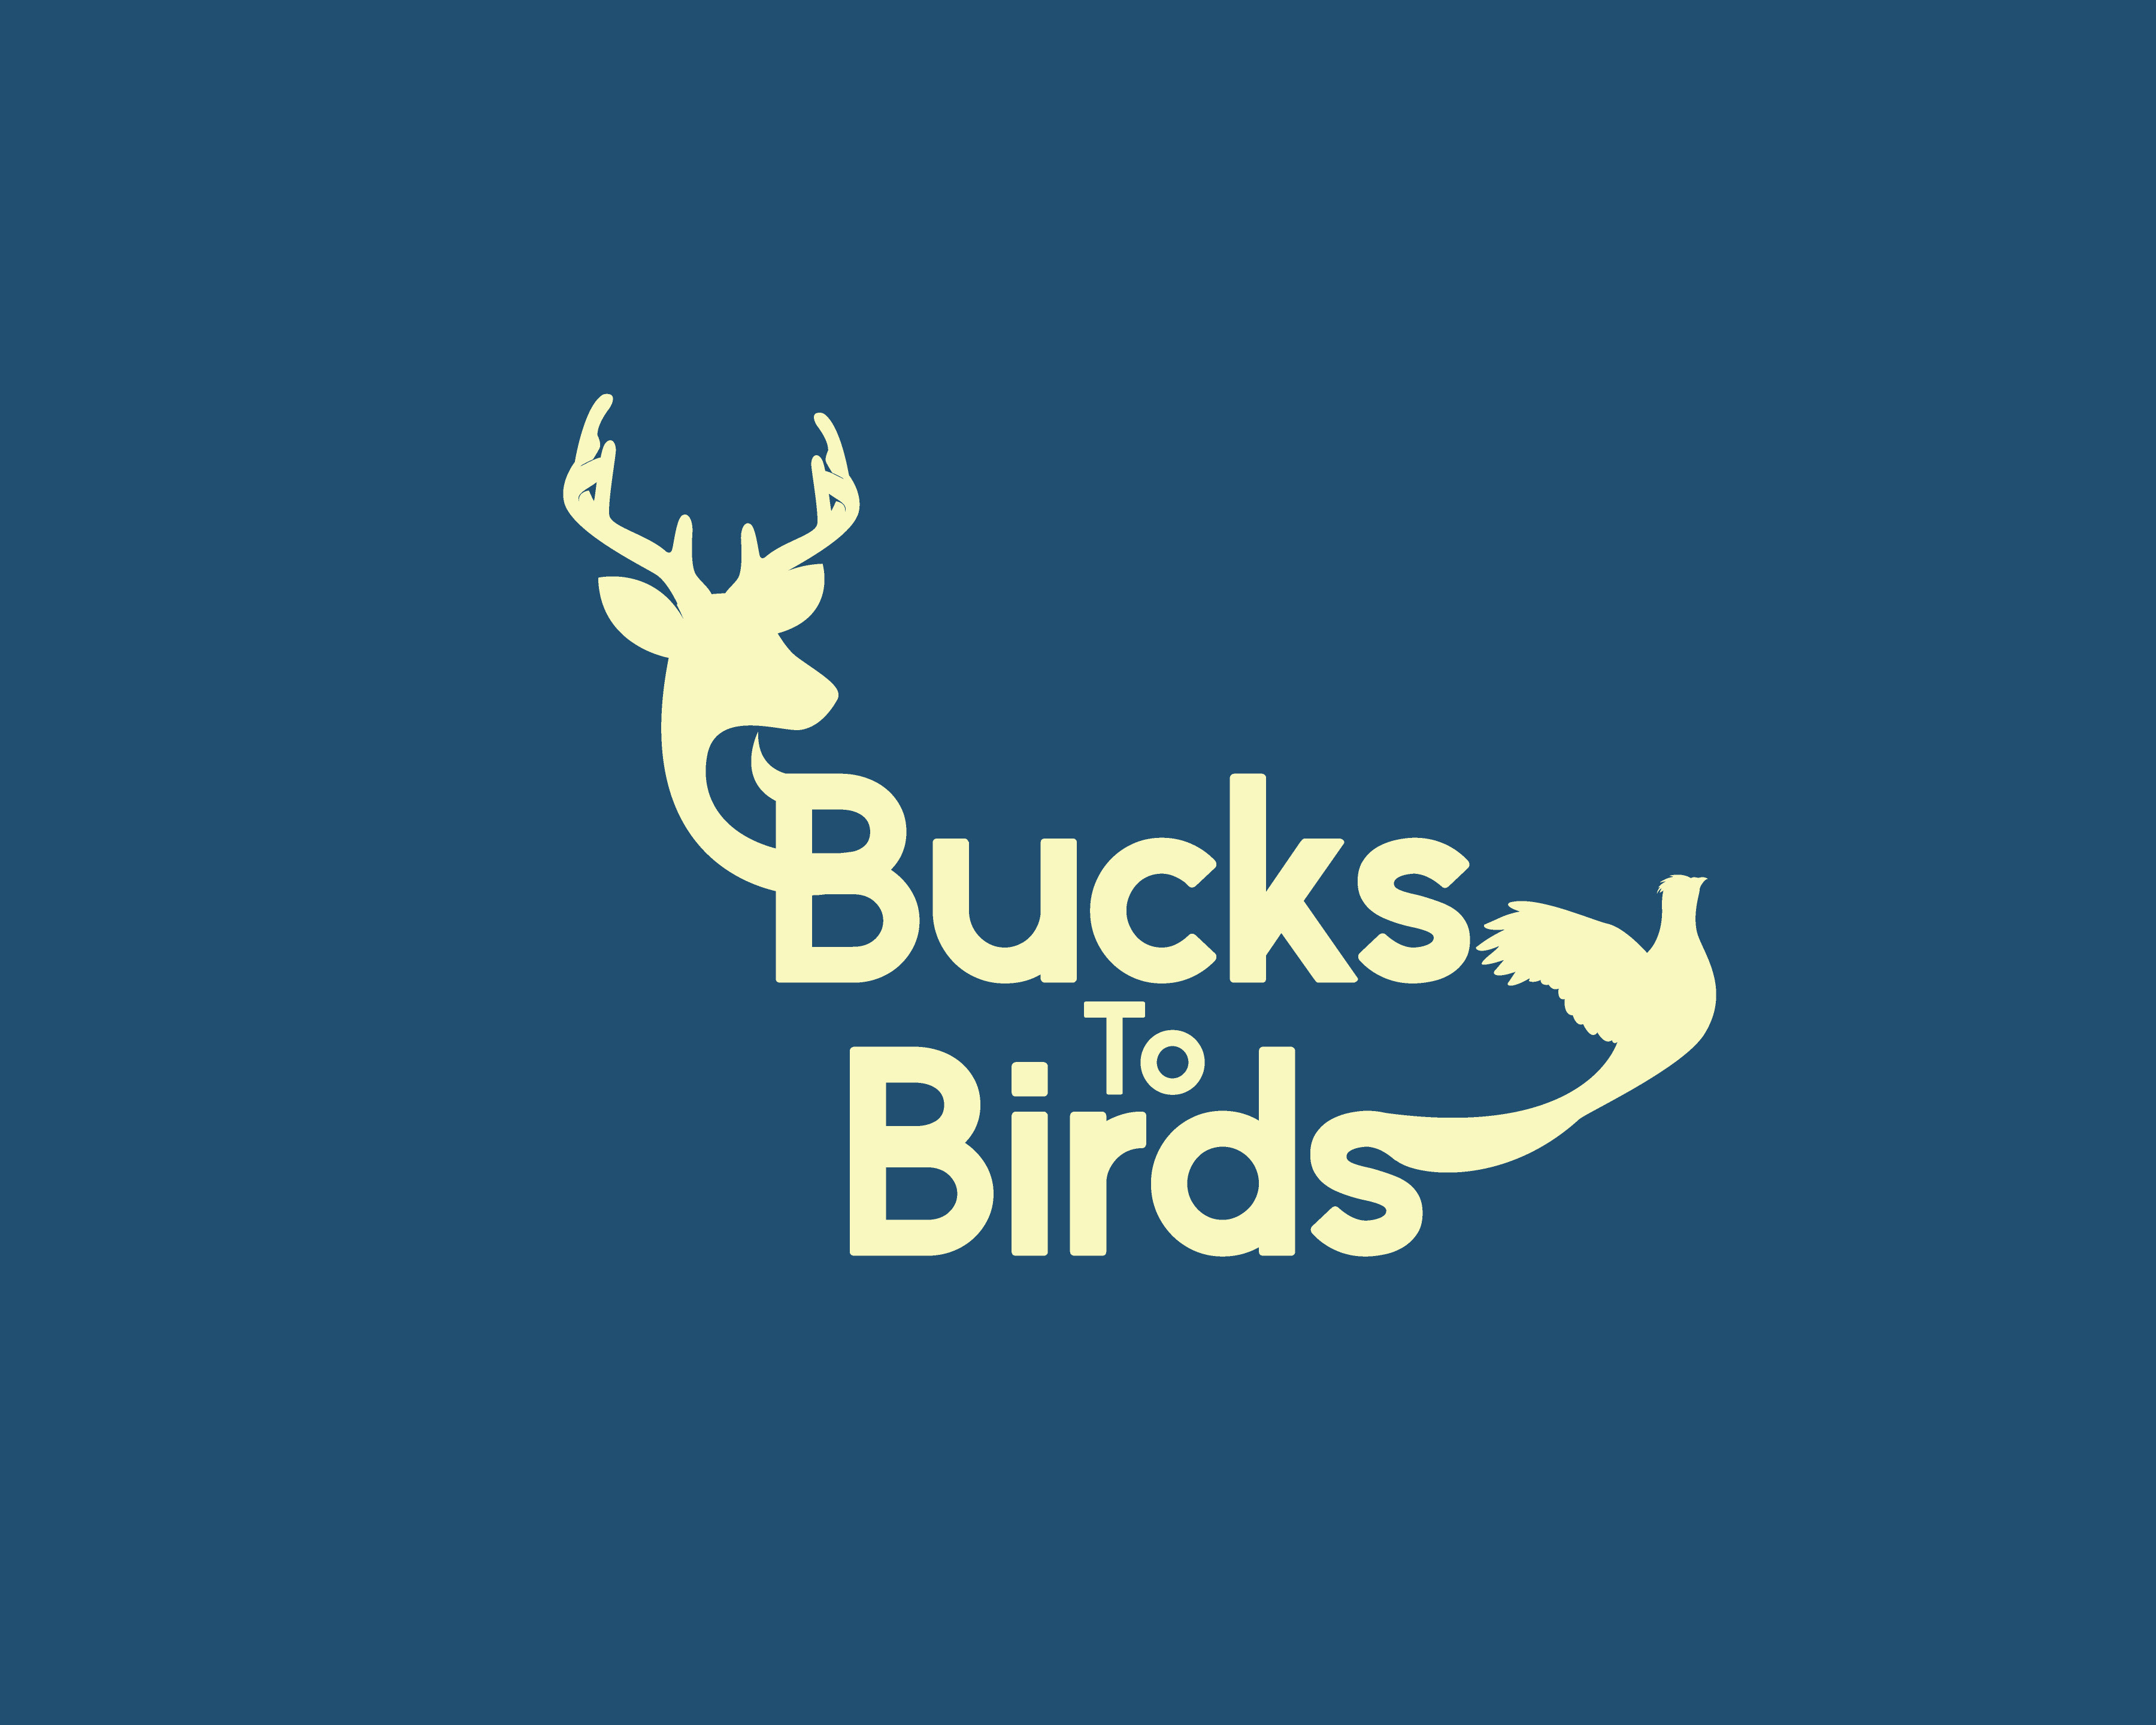 Habitat Podcast #113 - Bucks To Birds - Saving the Ruffed Grouse Campaign w/ Erich Long & Cody Altizer  show art